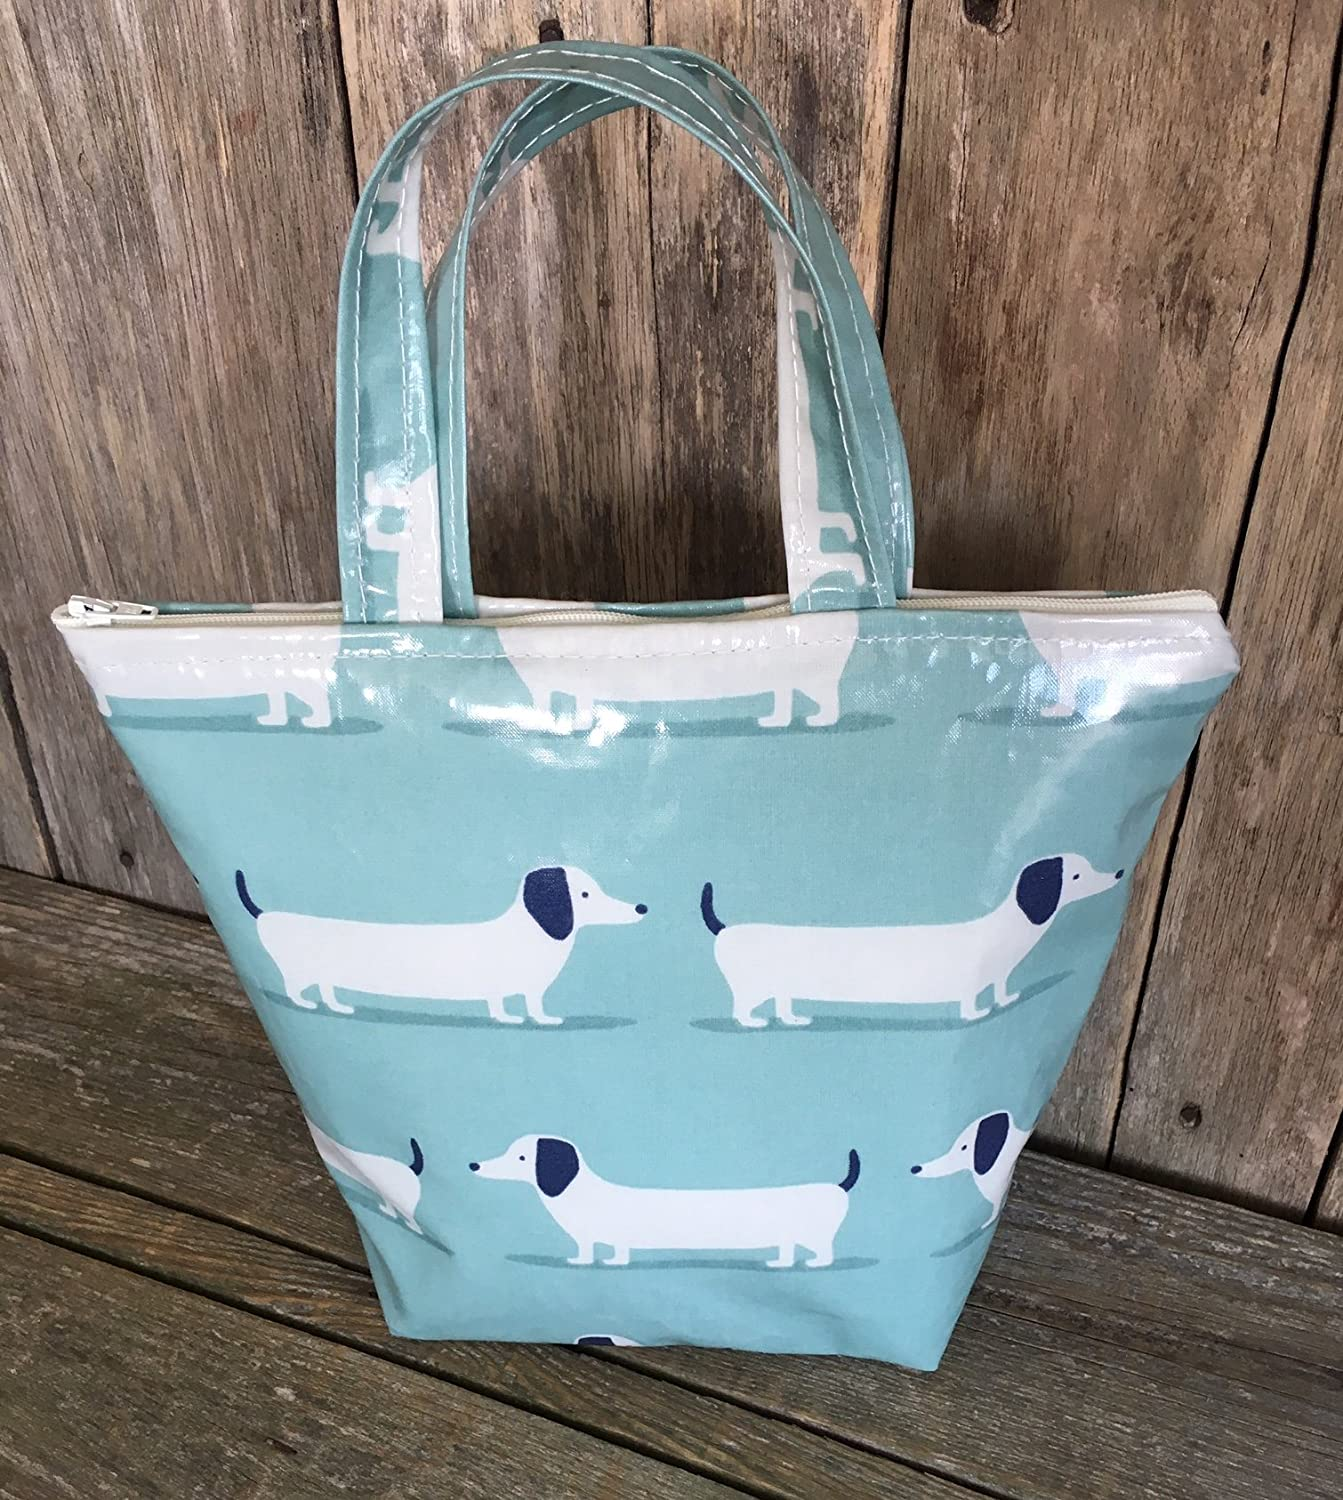 Insulated Lunch Bag, school Bag, lunch Tote, cool Bag, picnic Bags, duckegg blue dachshund Oilcloth